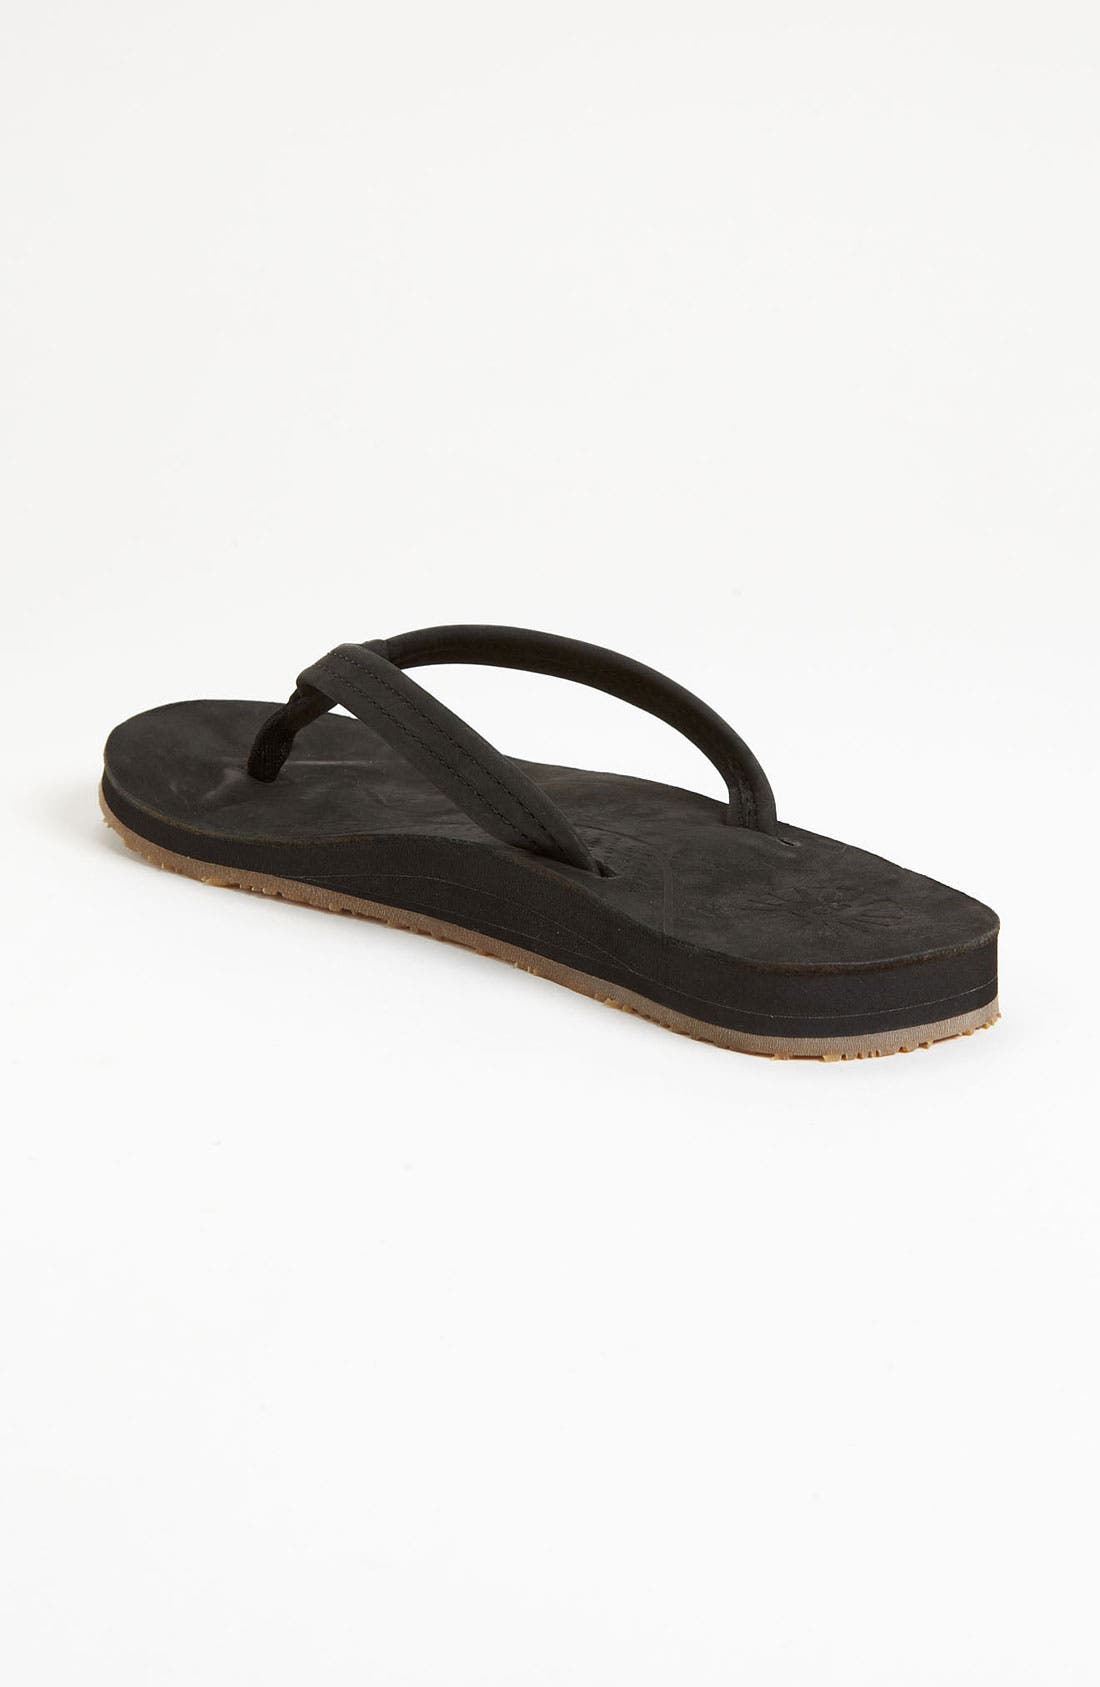 Alternate Image 2  - UGG® 'Kayla' Thong Sandal (Women)